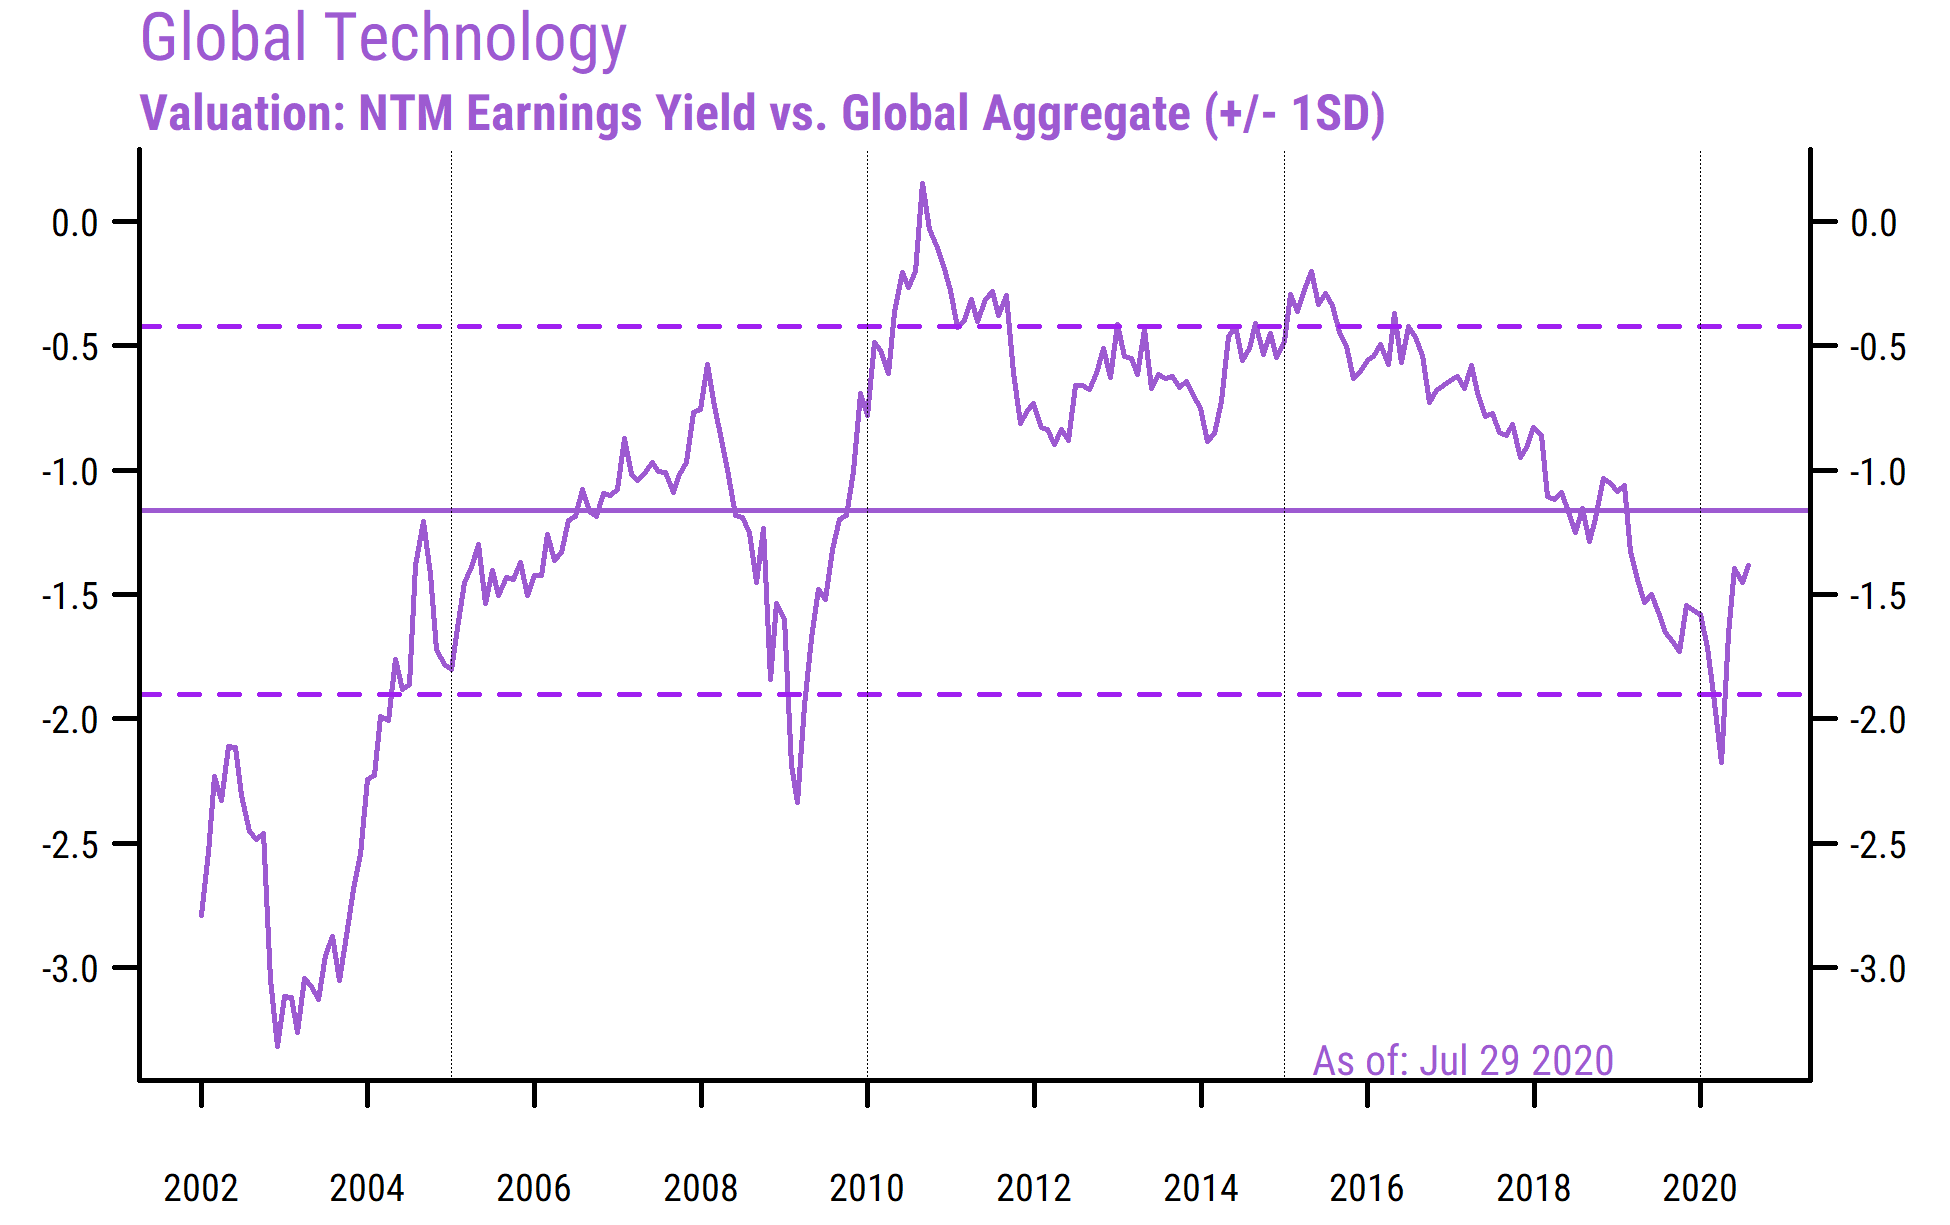 Global Technology Relative Valuation